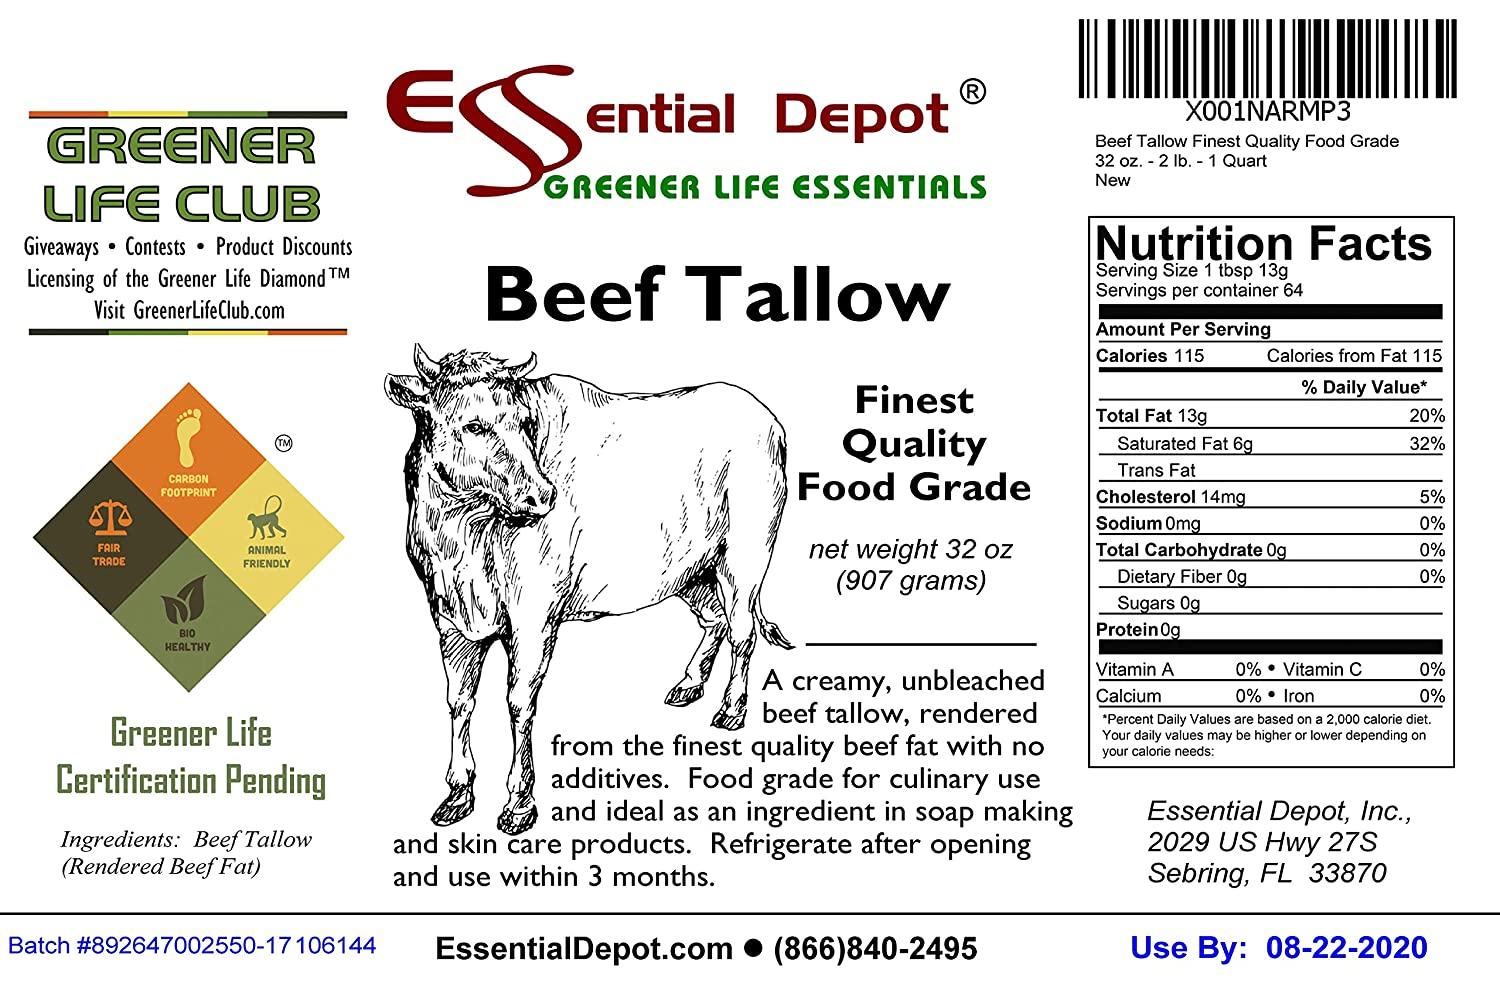 884259357a6 Amazon.com   Beef Tallow Finest Quality Food Grade - 32 oz. - 2 lb. - 1  Quart   Grocery   Gourmet Food